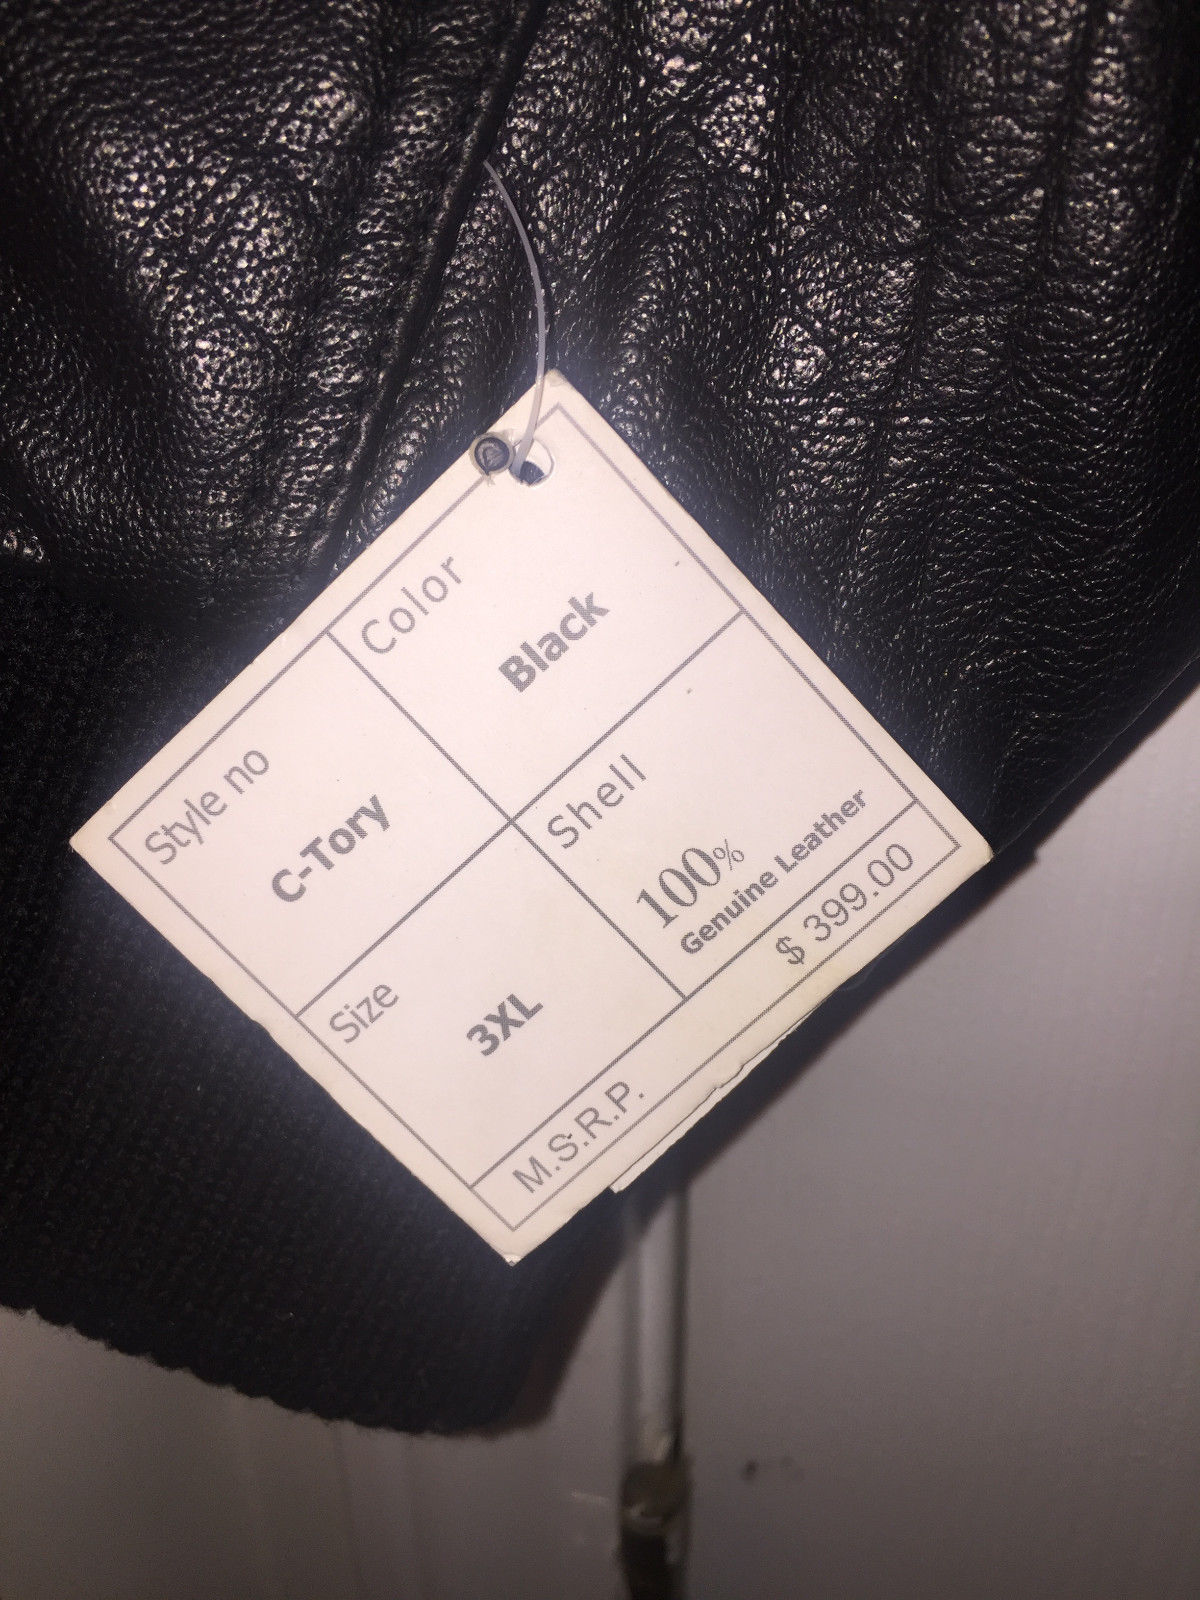 TANNERS AVENUE DISTRESSED LEATHER BASEBALL BOMBER JACKET SIZE 3XL - NWT